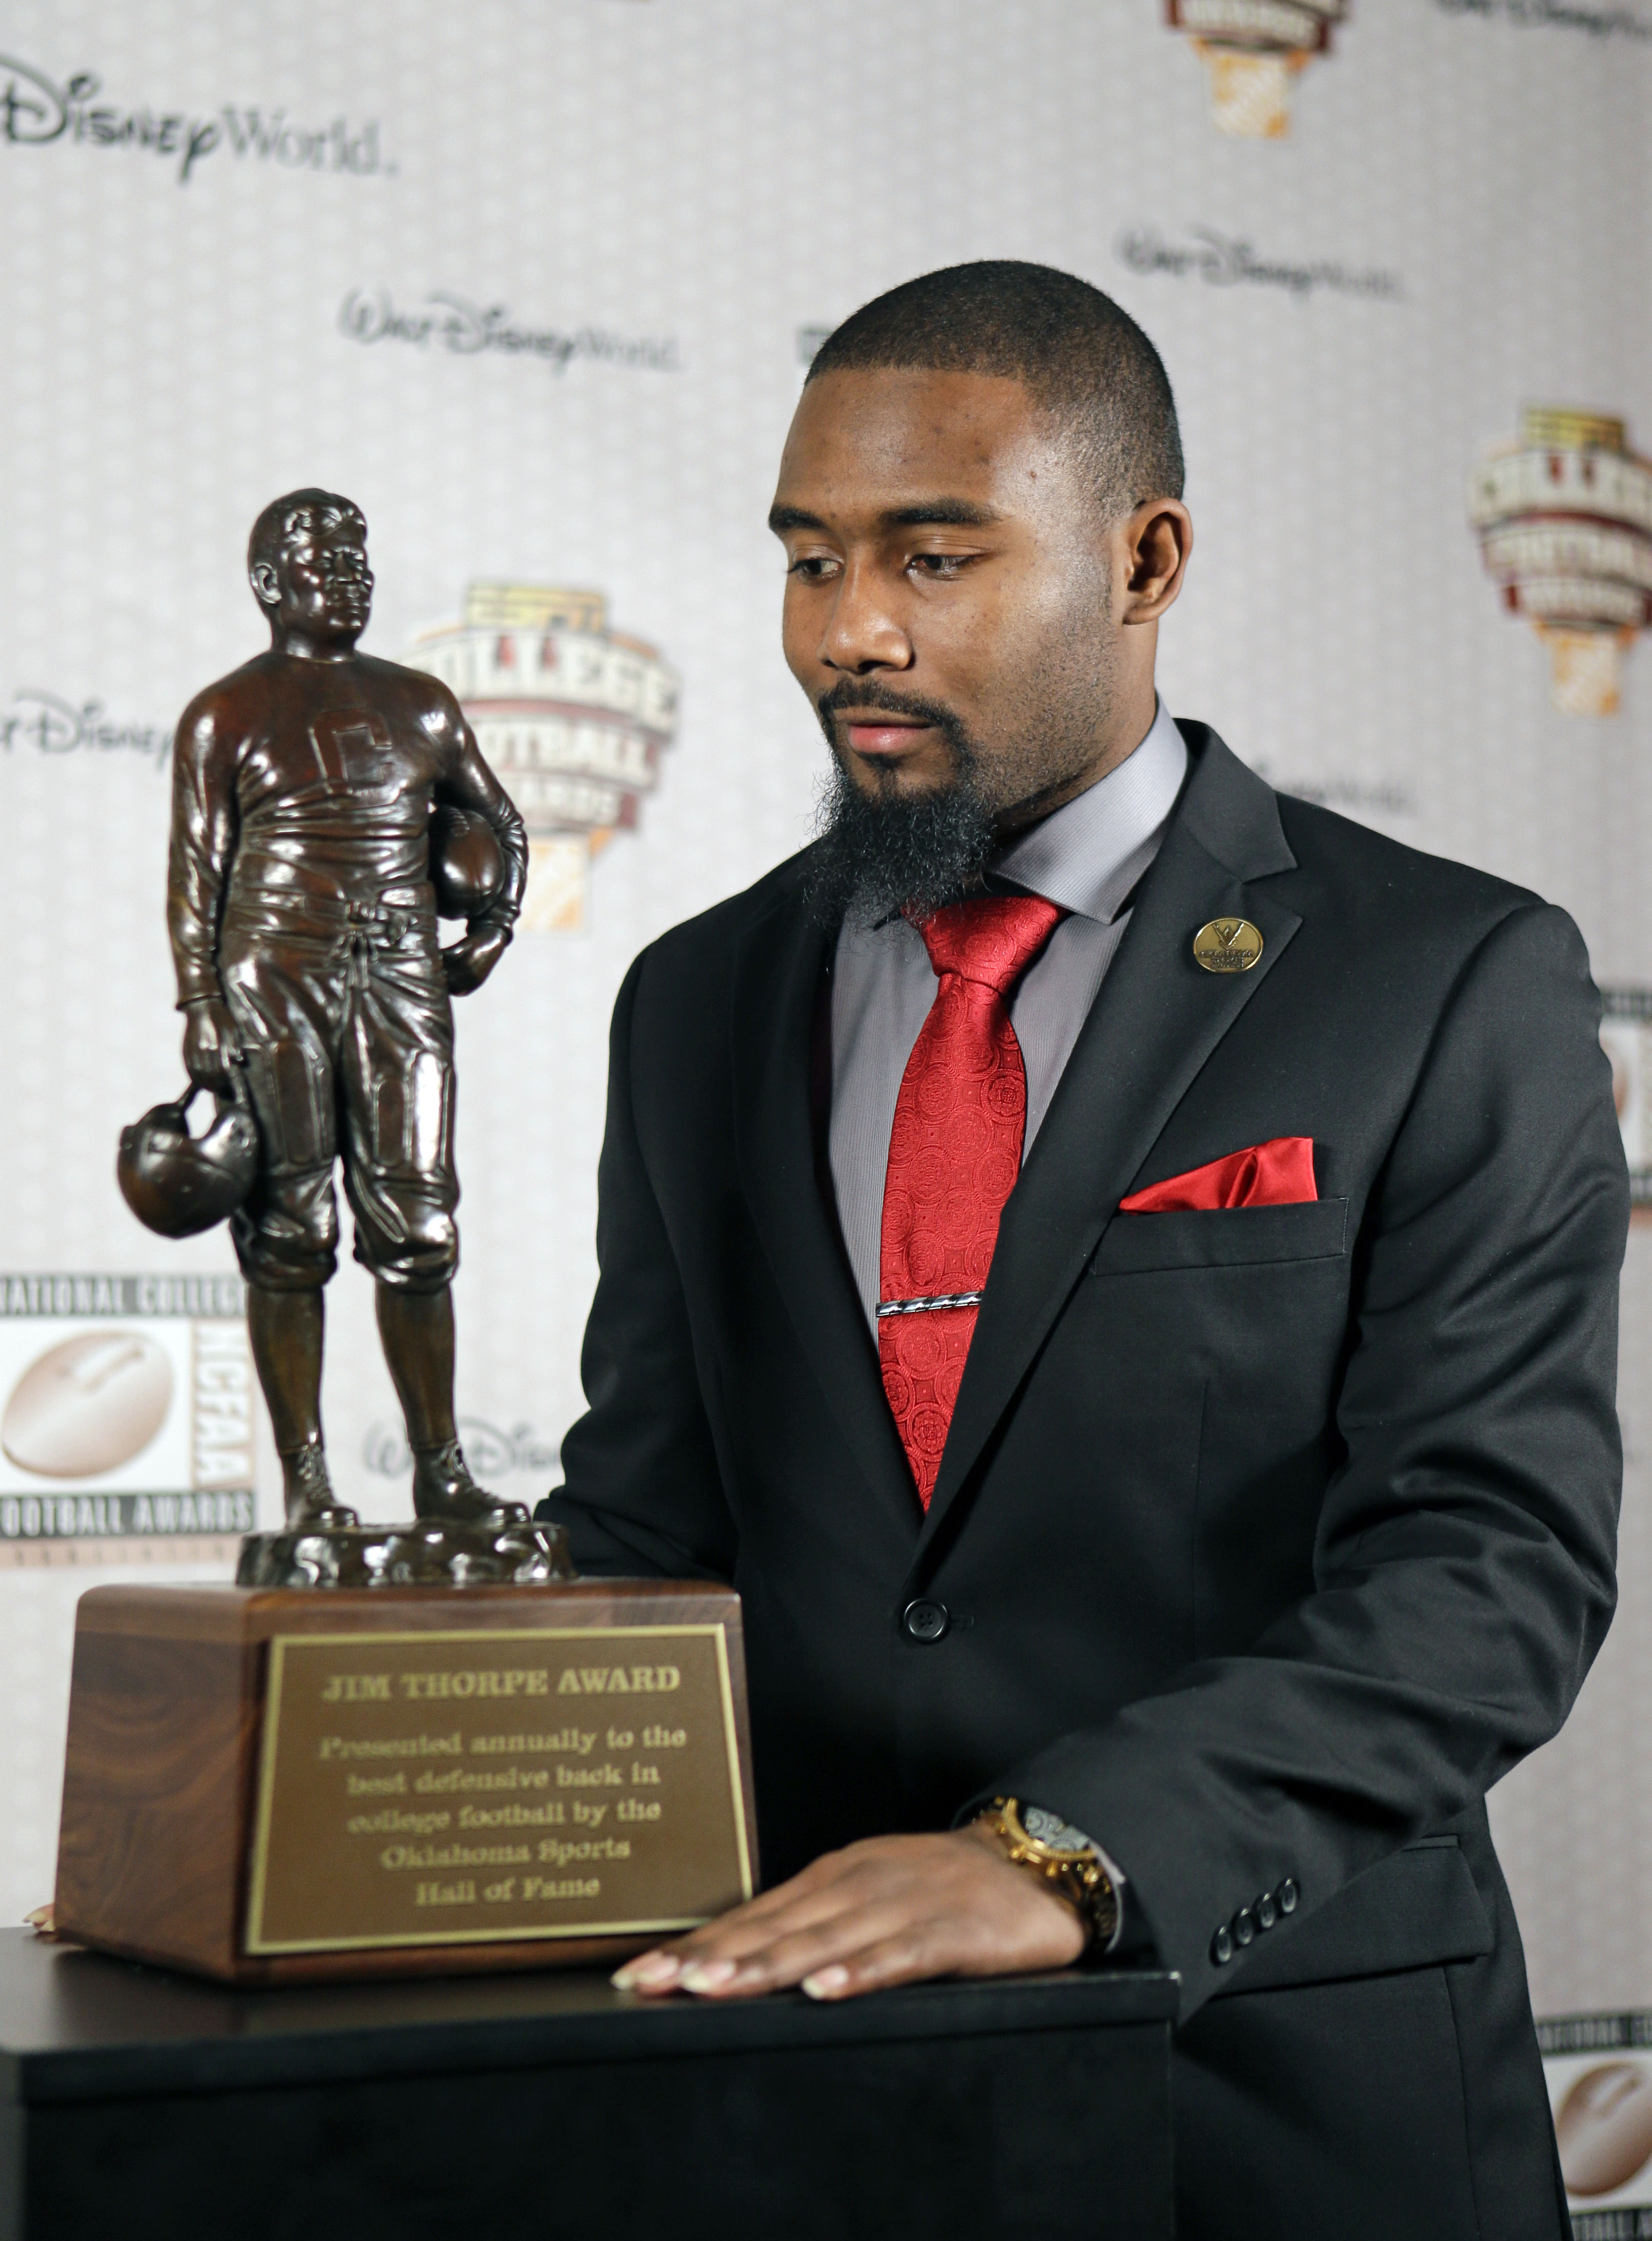 Louisville's Gerod Holliman stands with the Jim Thorpe Award (AP Photo/John Raoux)